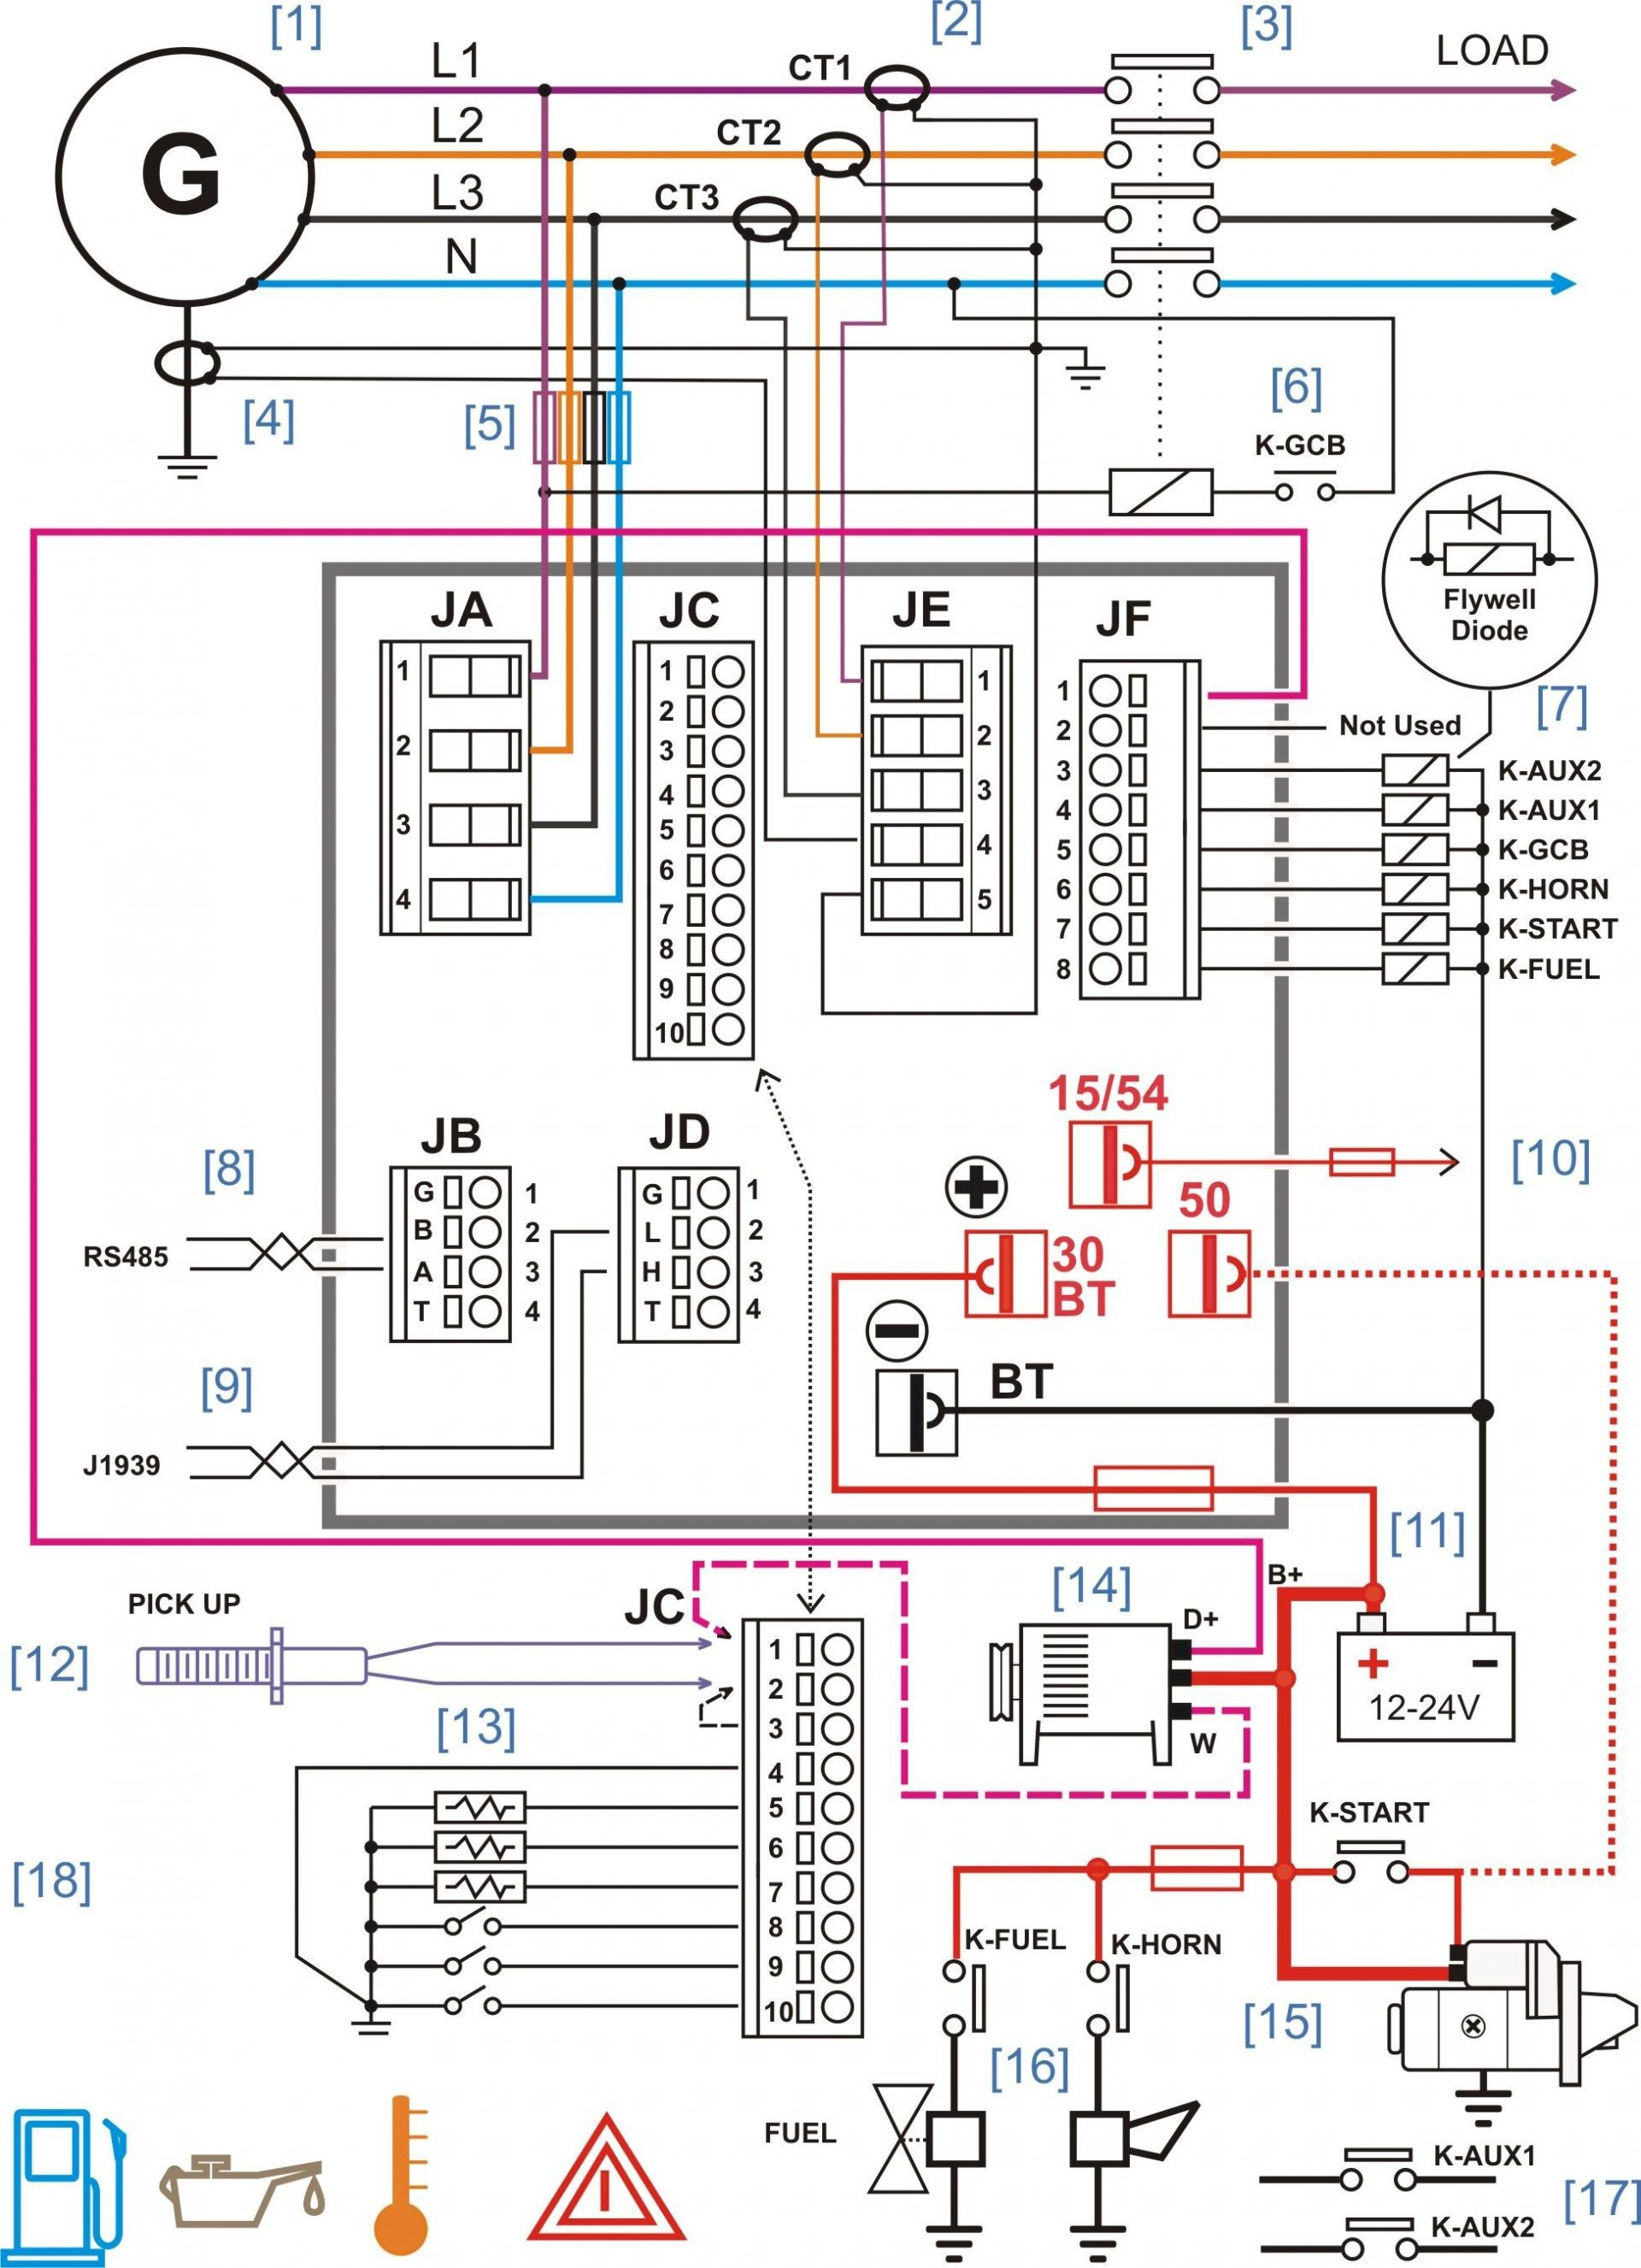 Electricall Wiring Diagram House Symbols Electrical Panel Board Pdf Control Schematic 1920